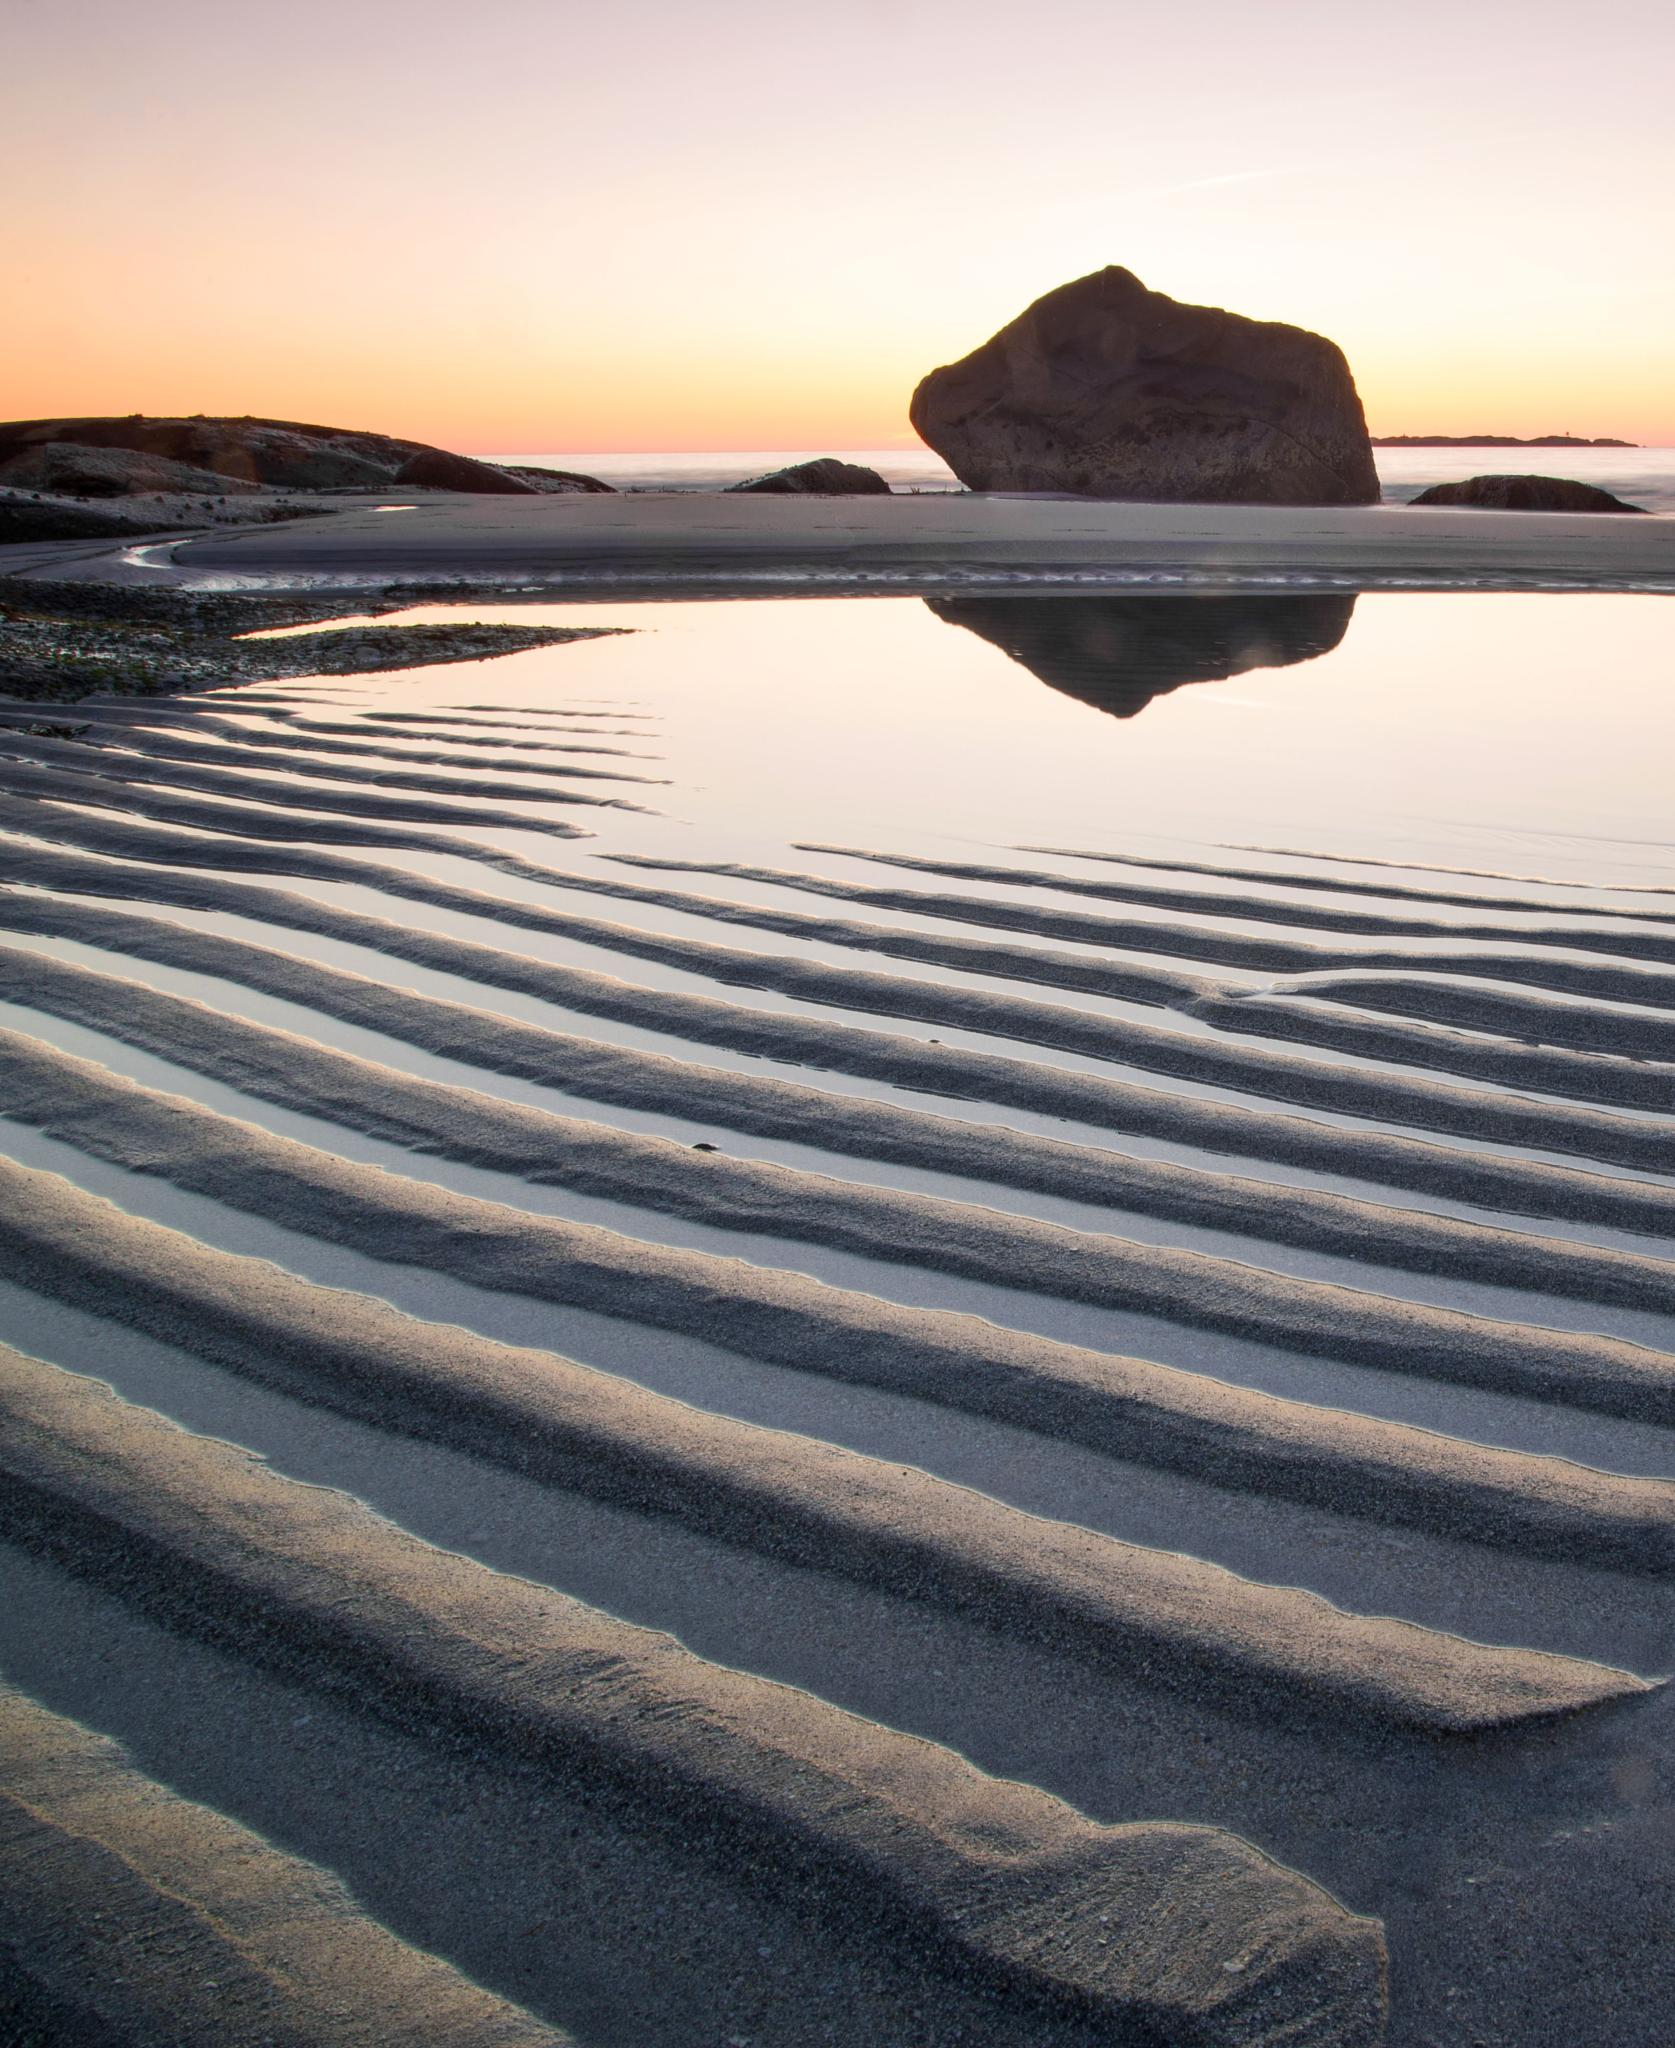 Lines in sand, reflections by catoh2